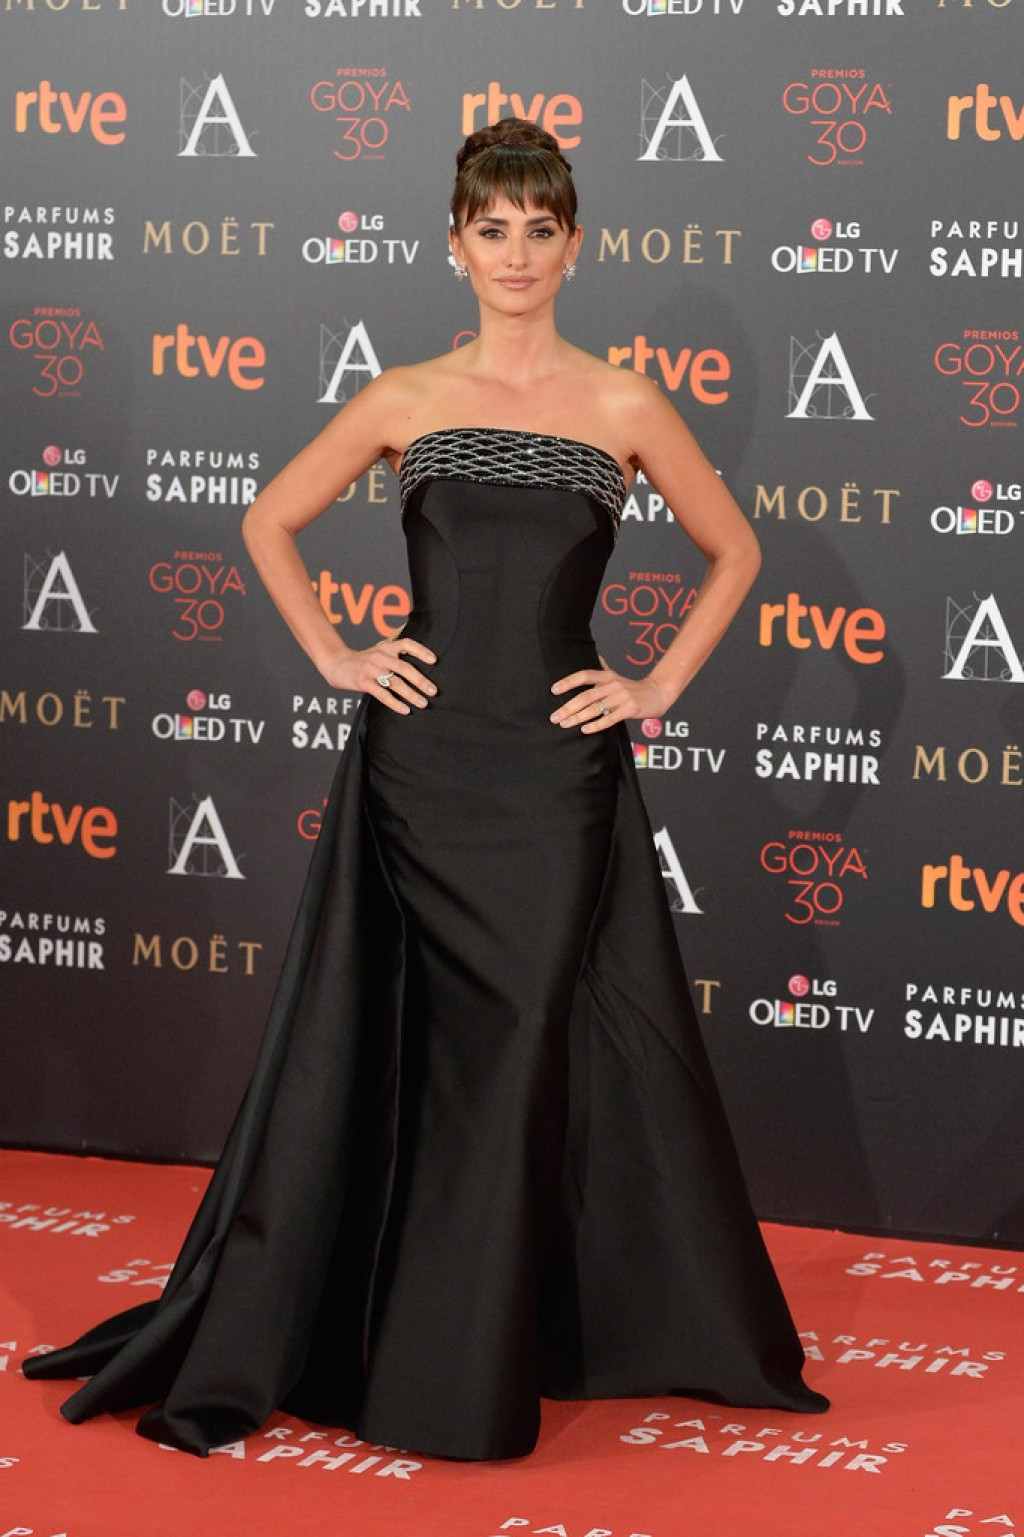 Goya-Cinema-Awards-Penelope-Cruz-1024x1537